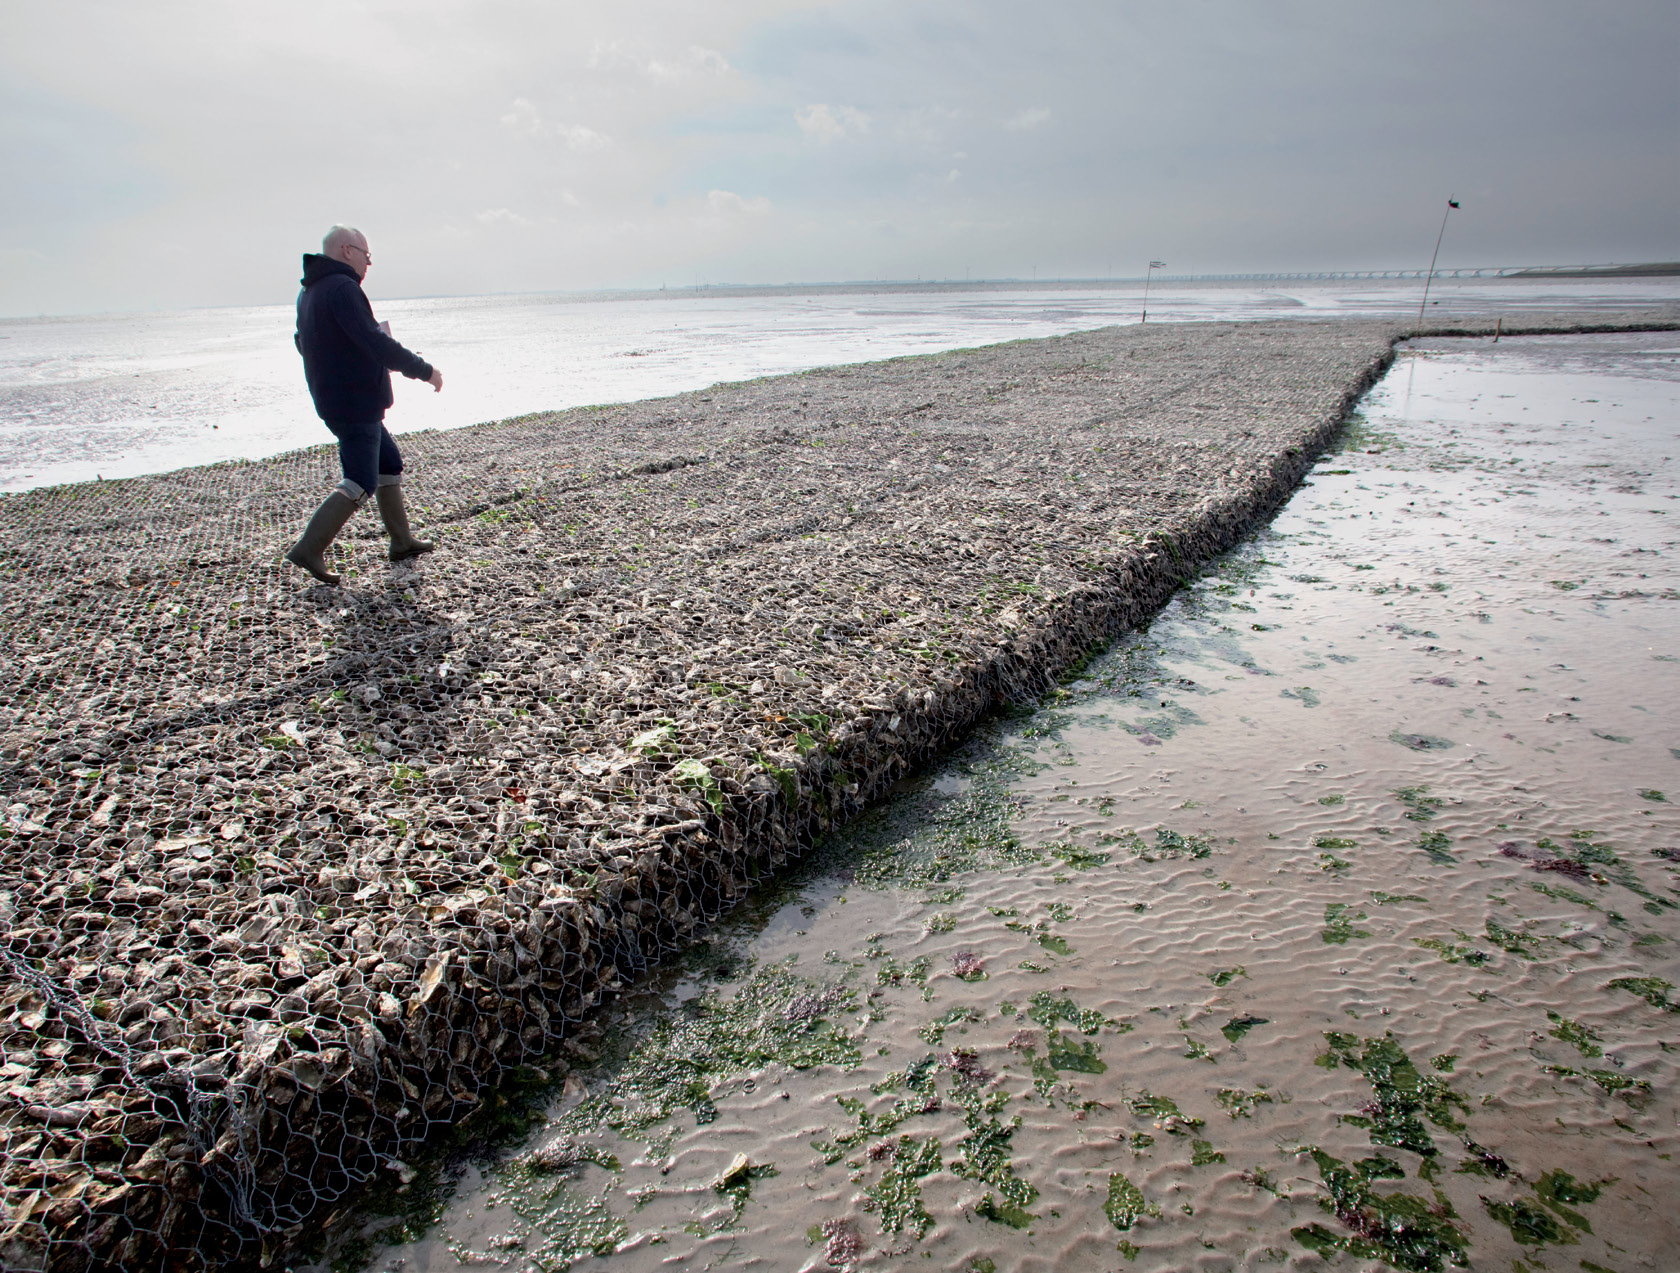 An oyster reef in the Eastern Scheldt estuary will dissipate wave energy and trap